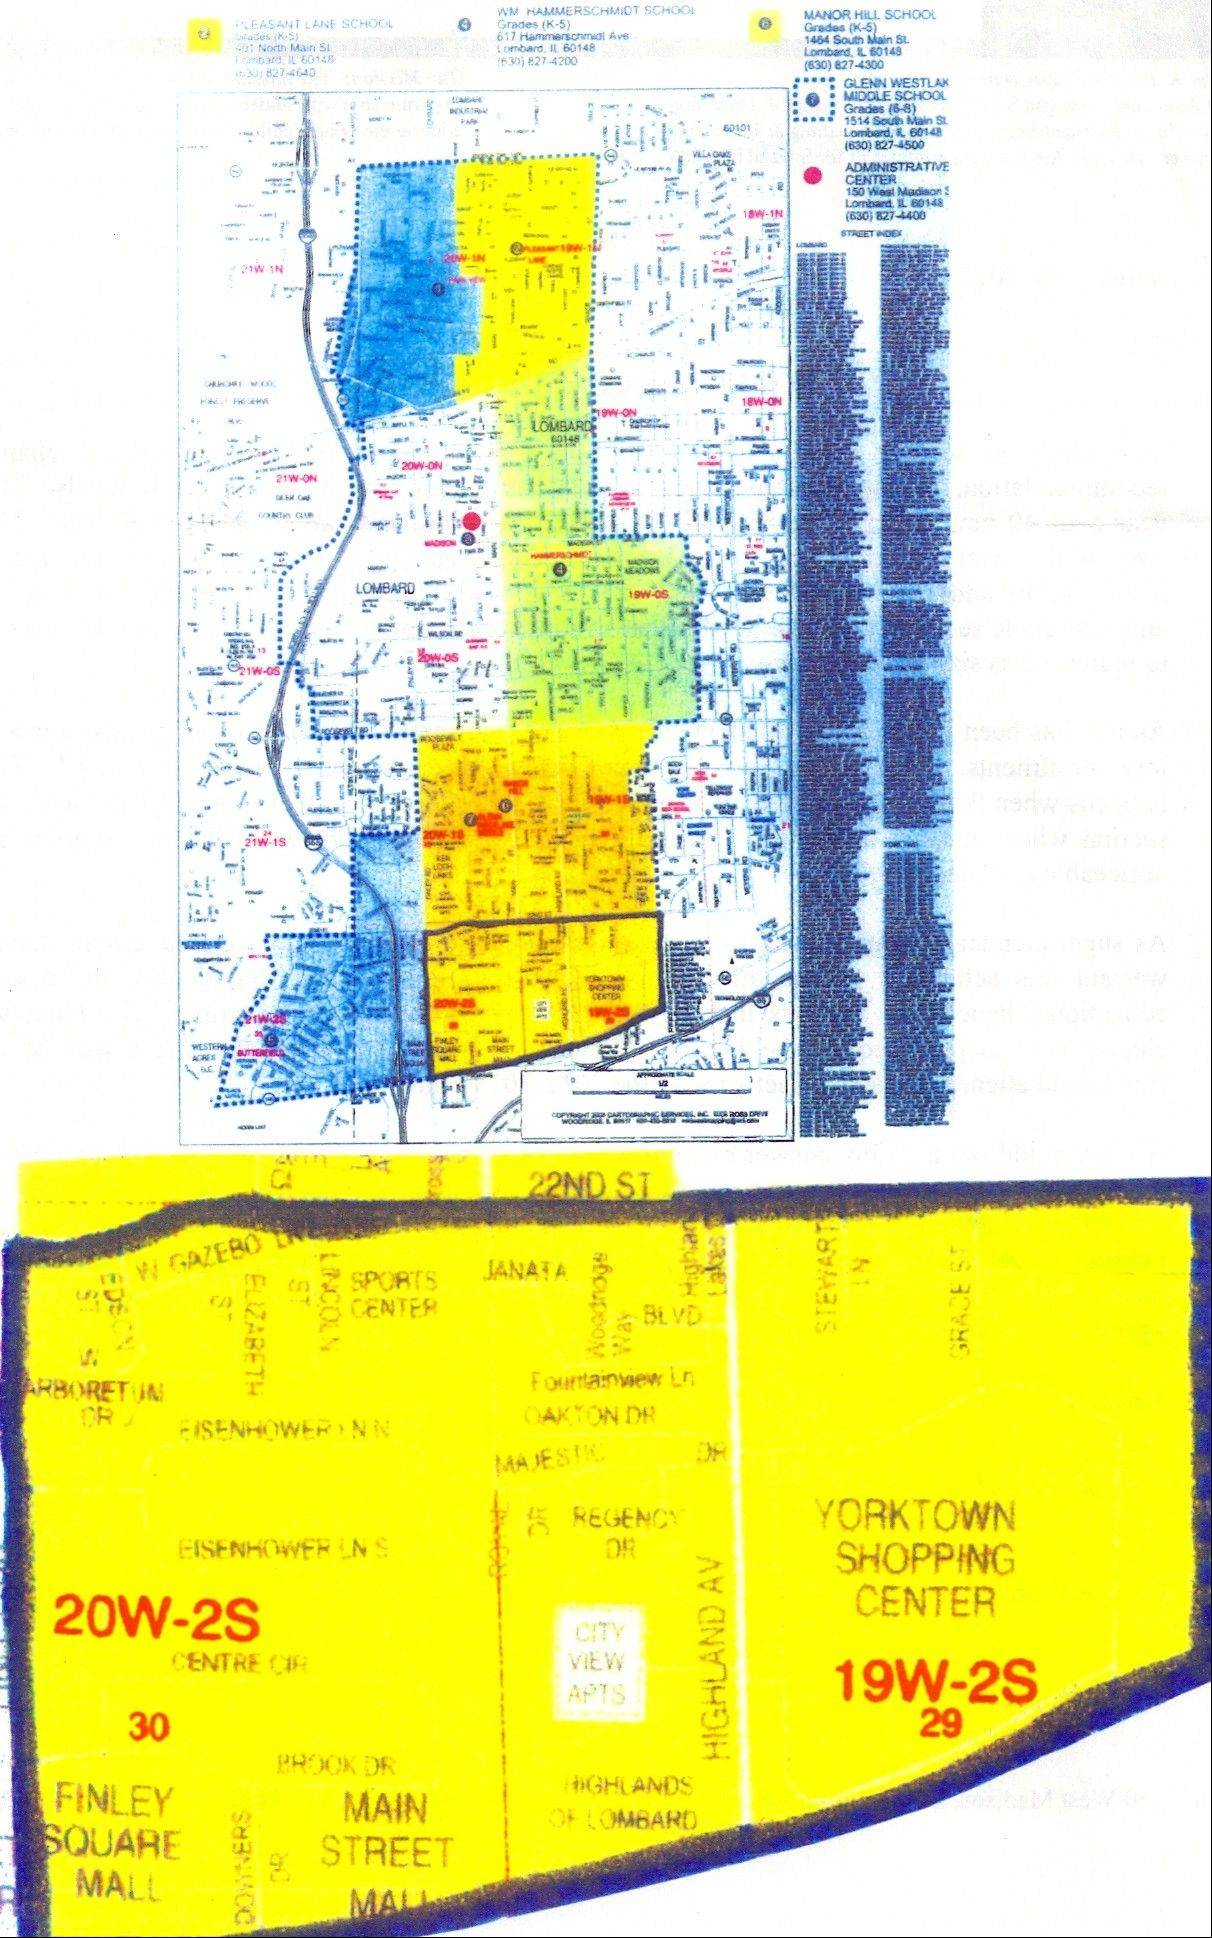 A proposed boundary change in Lombard Elementary District 44 would move students living between 22nd Street on the north, Butterfield Road on the south, Finley Road on the west and the district's eastern boundary to Butterfield Elementary School instead of Manor Hill Elementary School. The school board will begin discussing the proposal at 8 p.m. Tuesday, Feb. 14, at Pleasant Lake Elementary School, 401 N. Main St., Lombard.